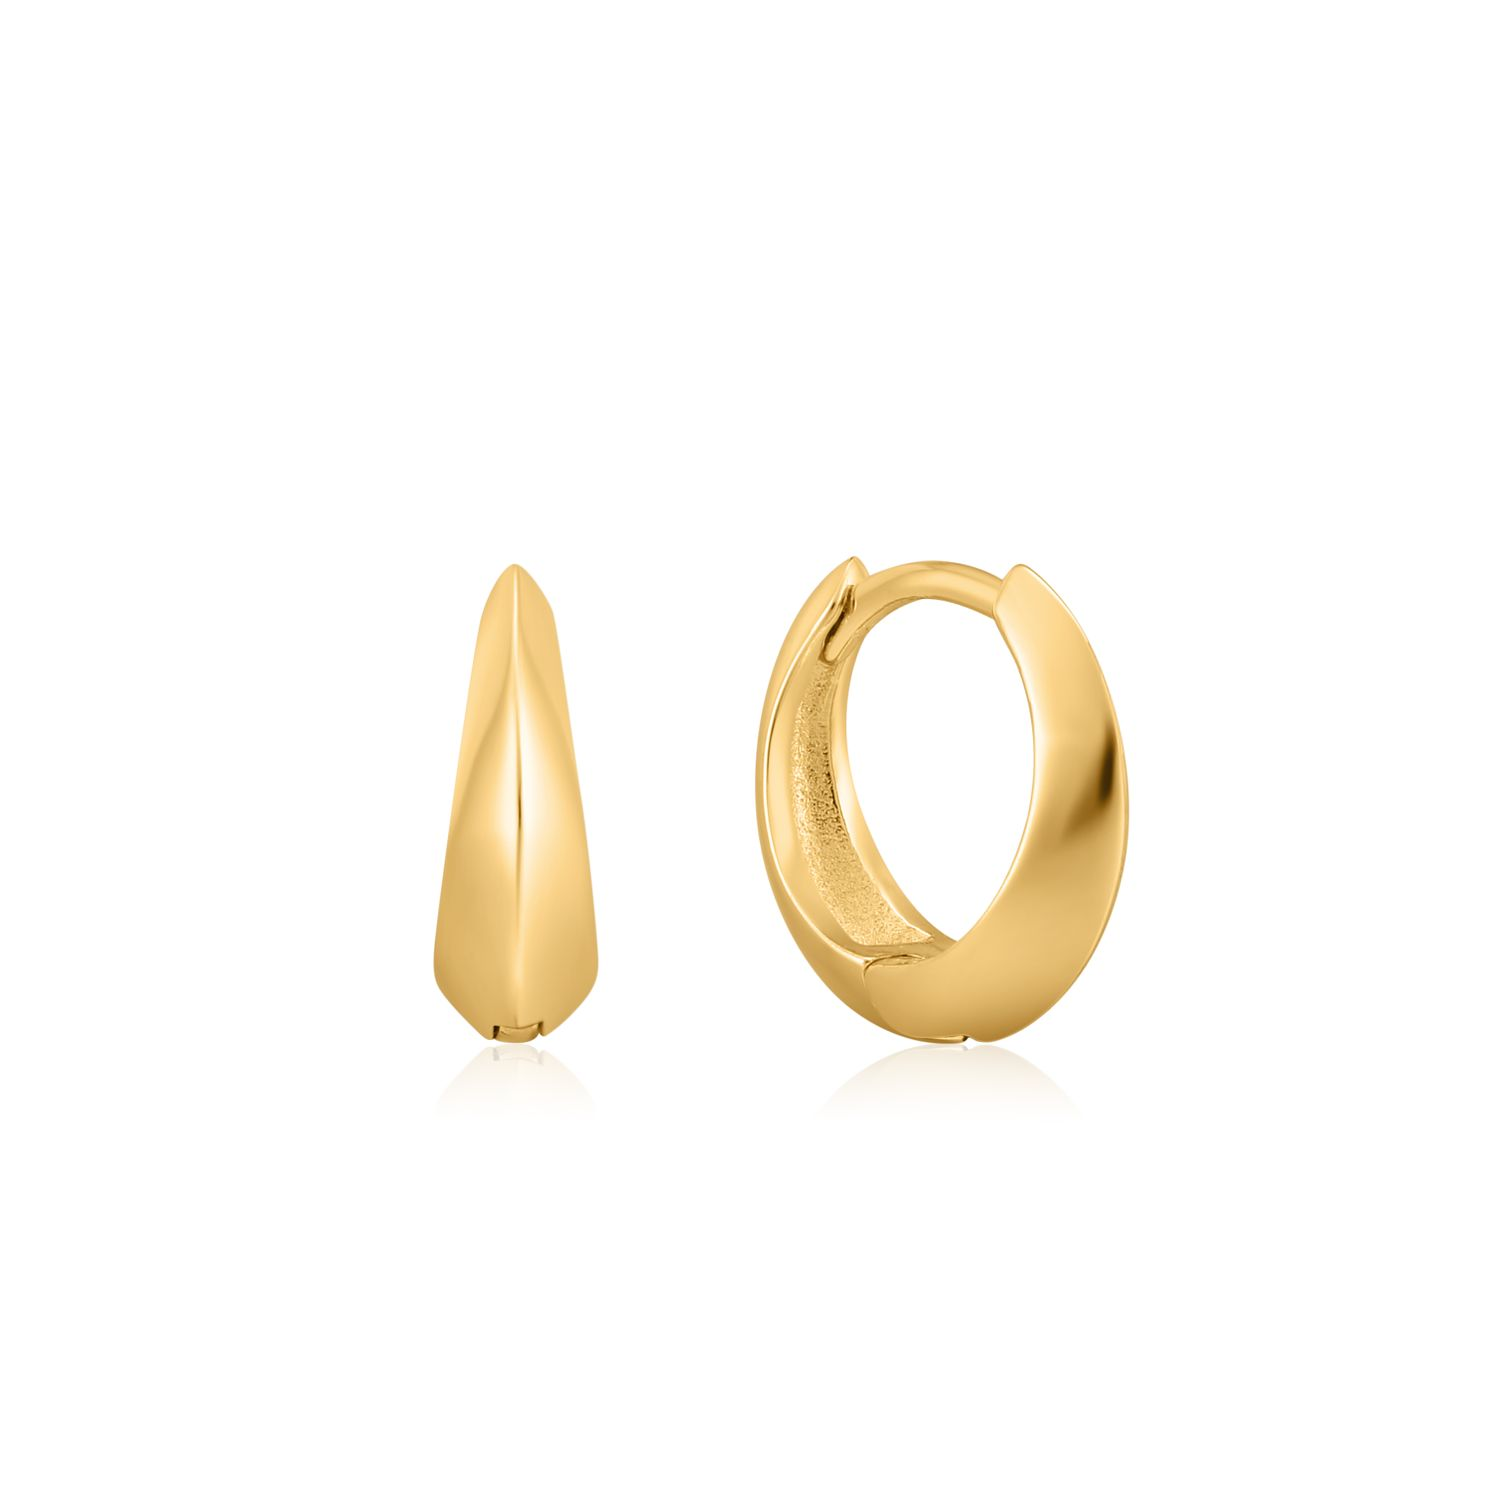 Ania Haie 14ct Yellow Gold Plated Spike Small Hoop Earrings - Product number 1288628